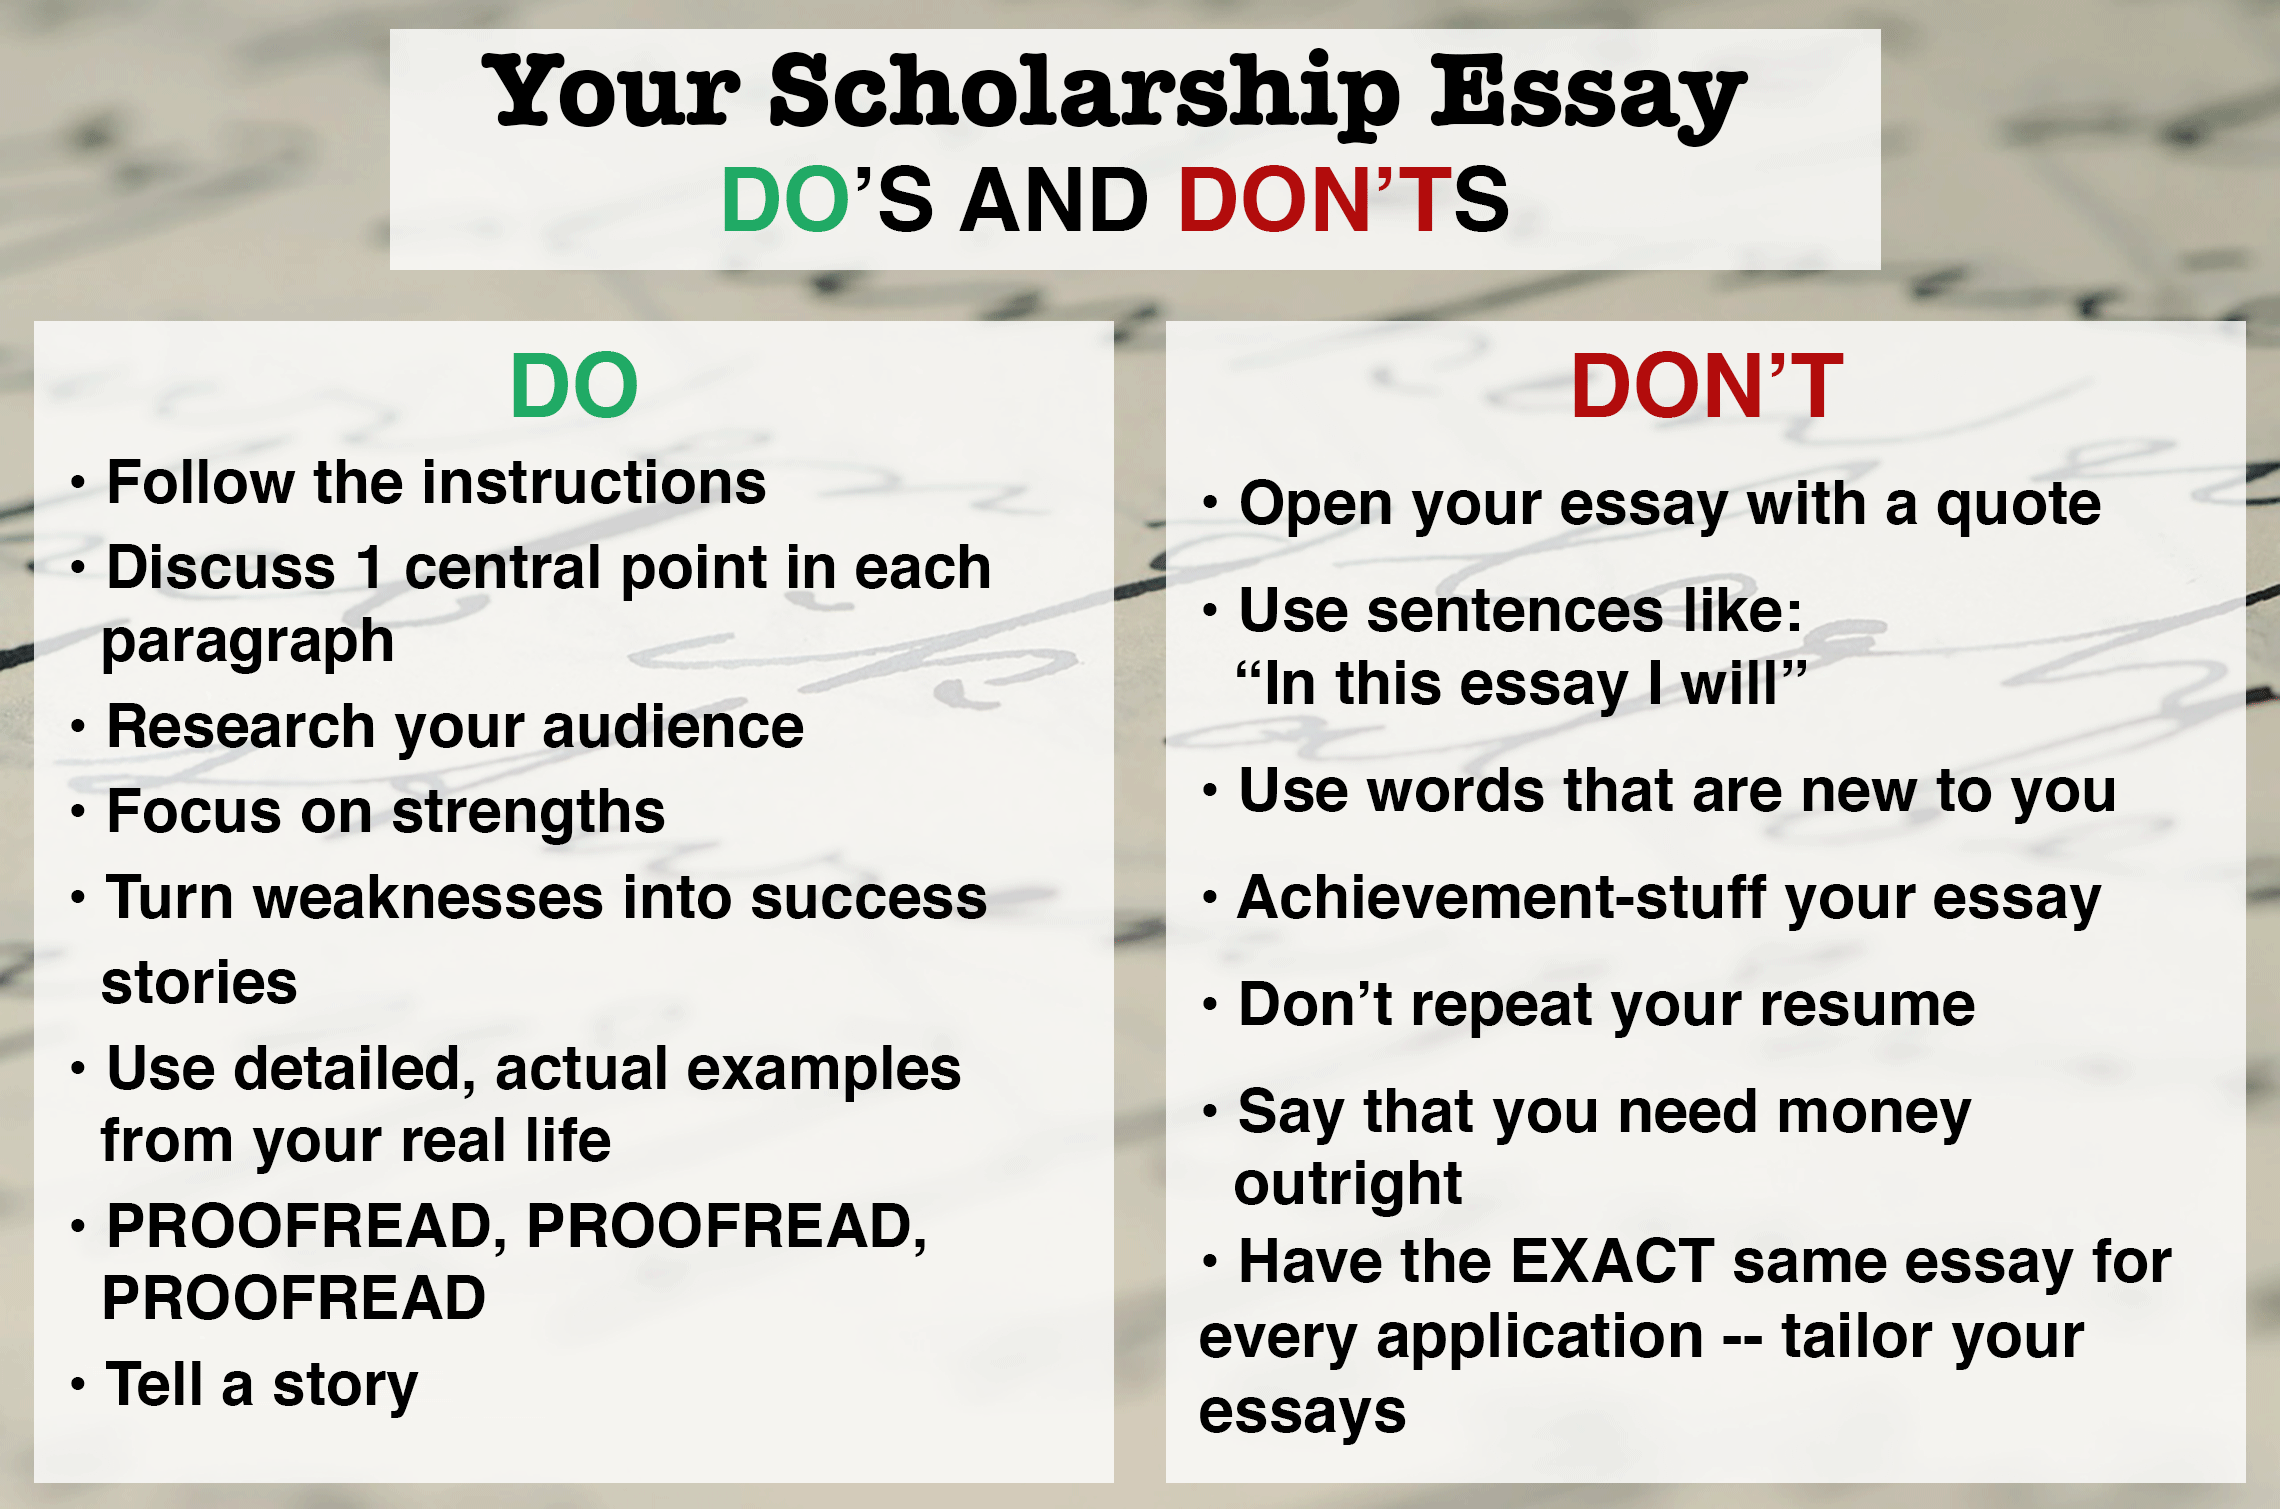 Business Essay Structure Dosdontsscholes Persuasive Essay Examples For High School also Making A Thesis Statement For An Essay How To Write A Winning Scholarship Essay In  Steps Essay Writing On Newspaper